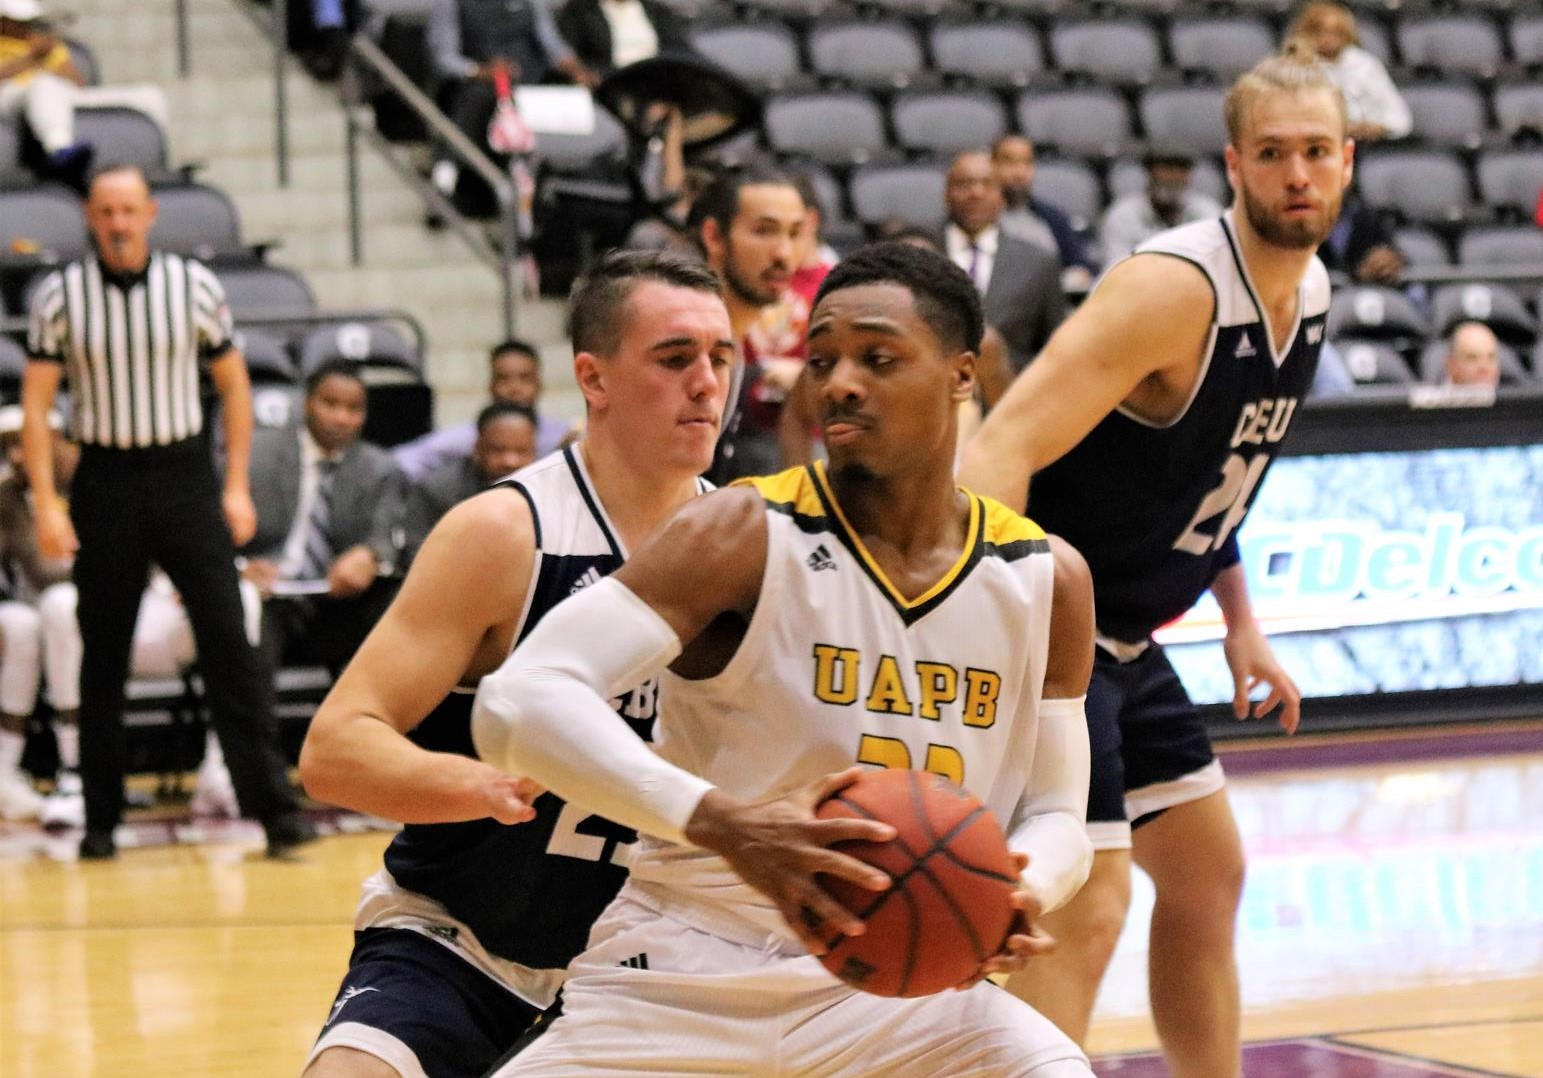 UAPB senior guard Martaveous McKnight finished with 20 points in the victory over Little Rock and was named tournament MVP.